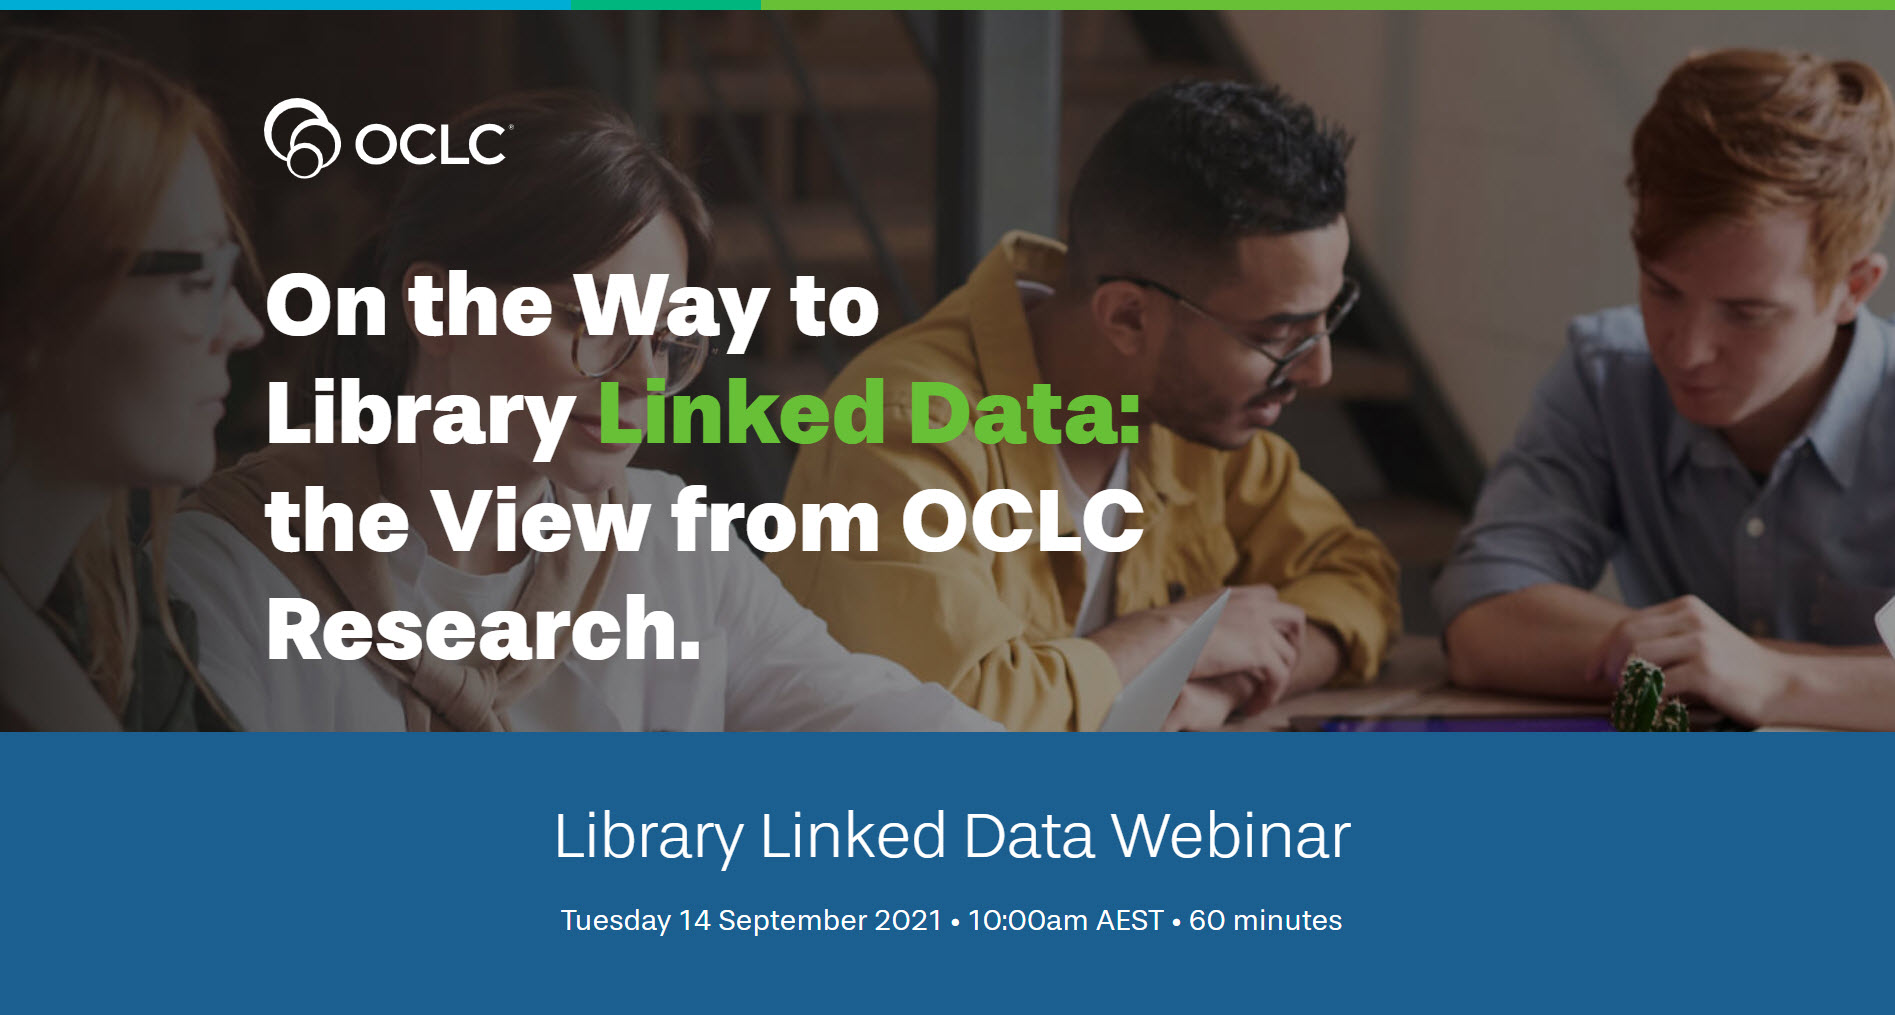 On the Way to Library Linked Data: A View from OCLC Research